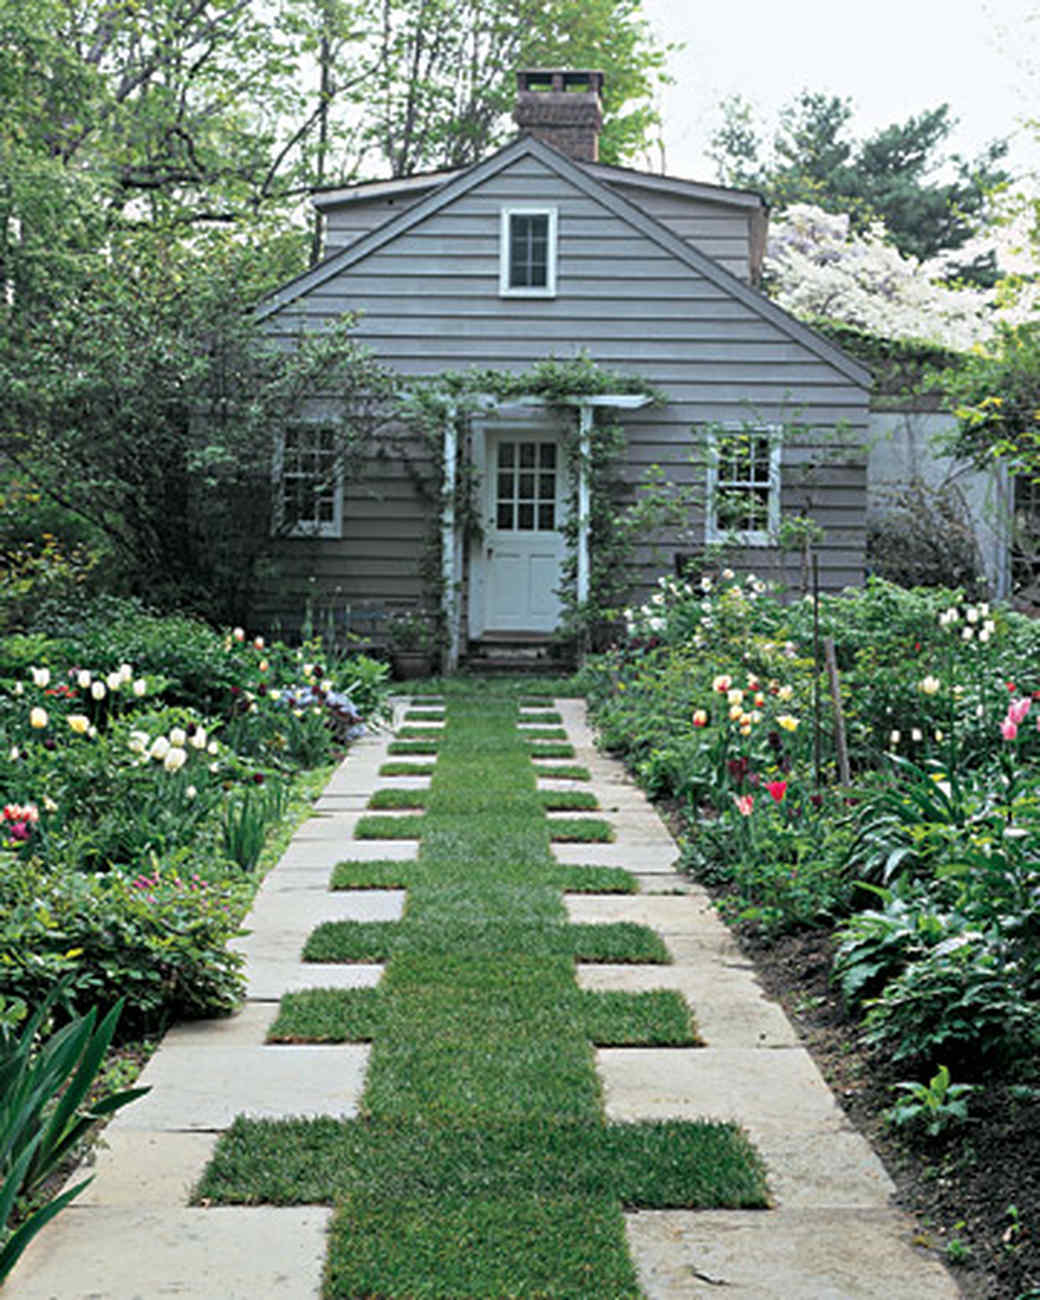 Home and Garden (How To...)